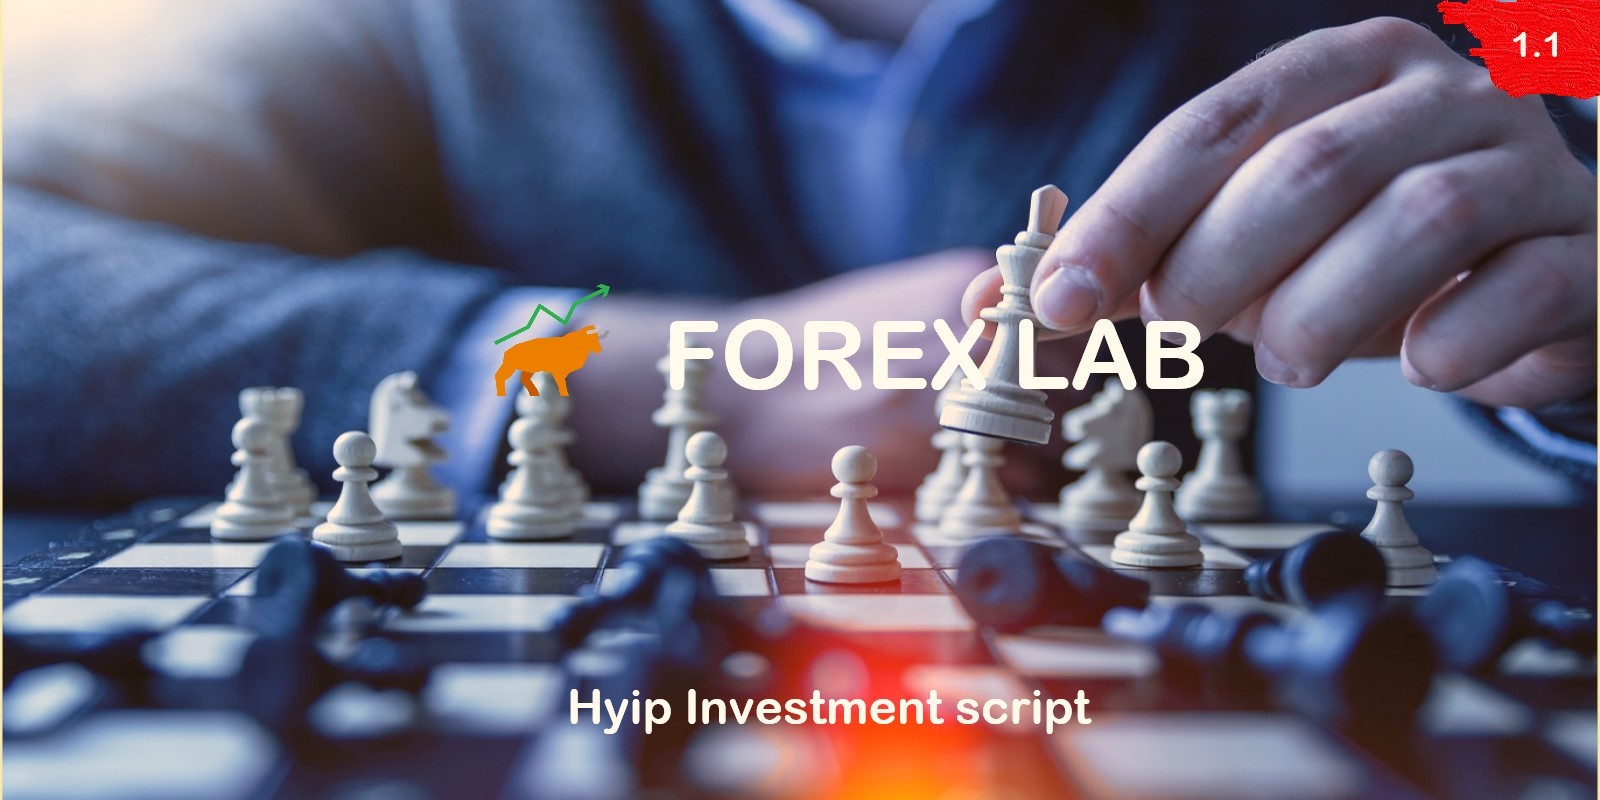 Forex lab - Investment And Trading Platform Script